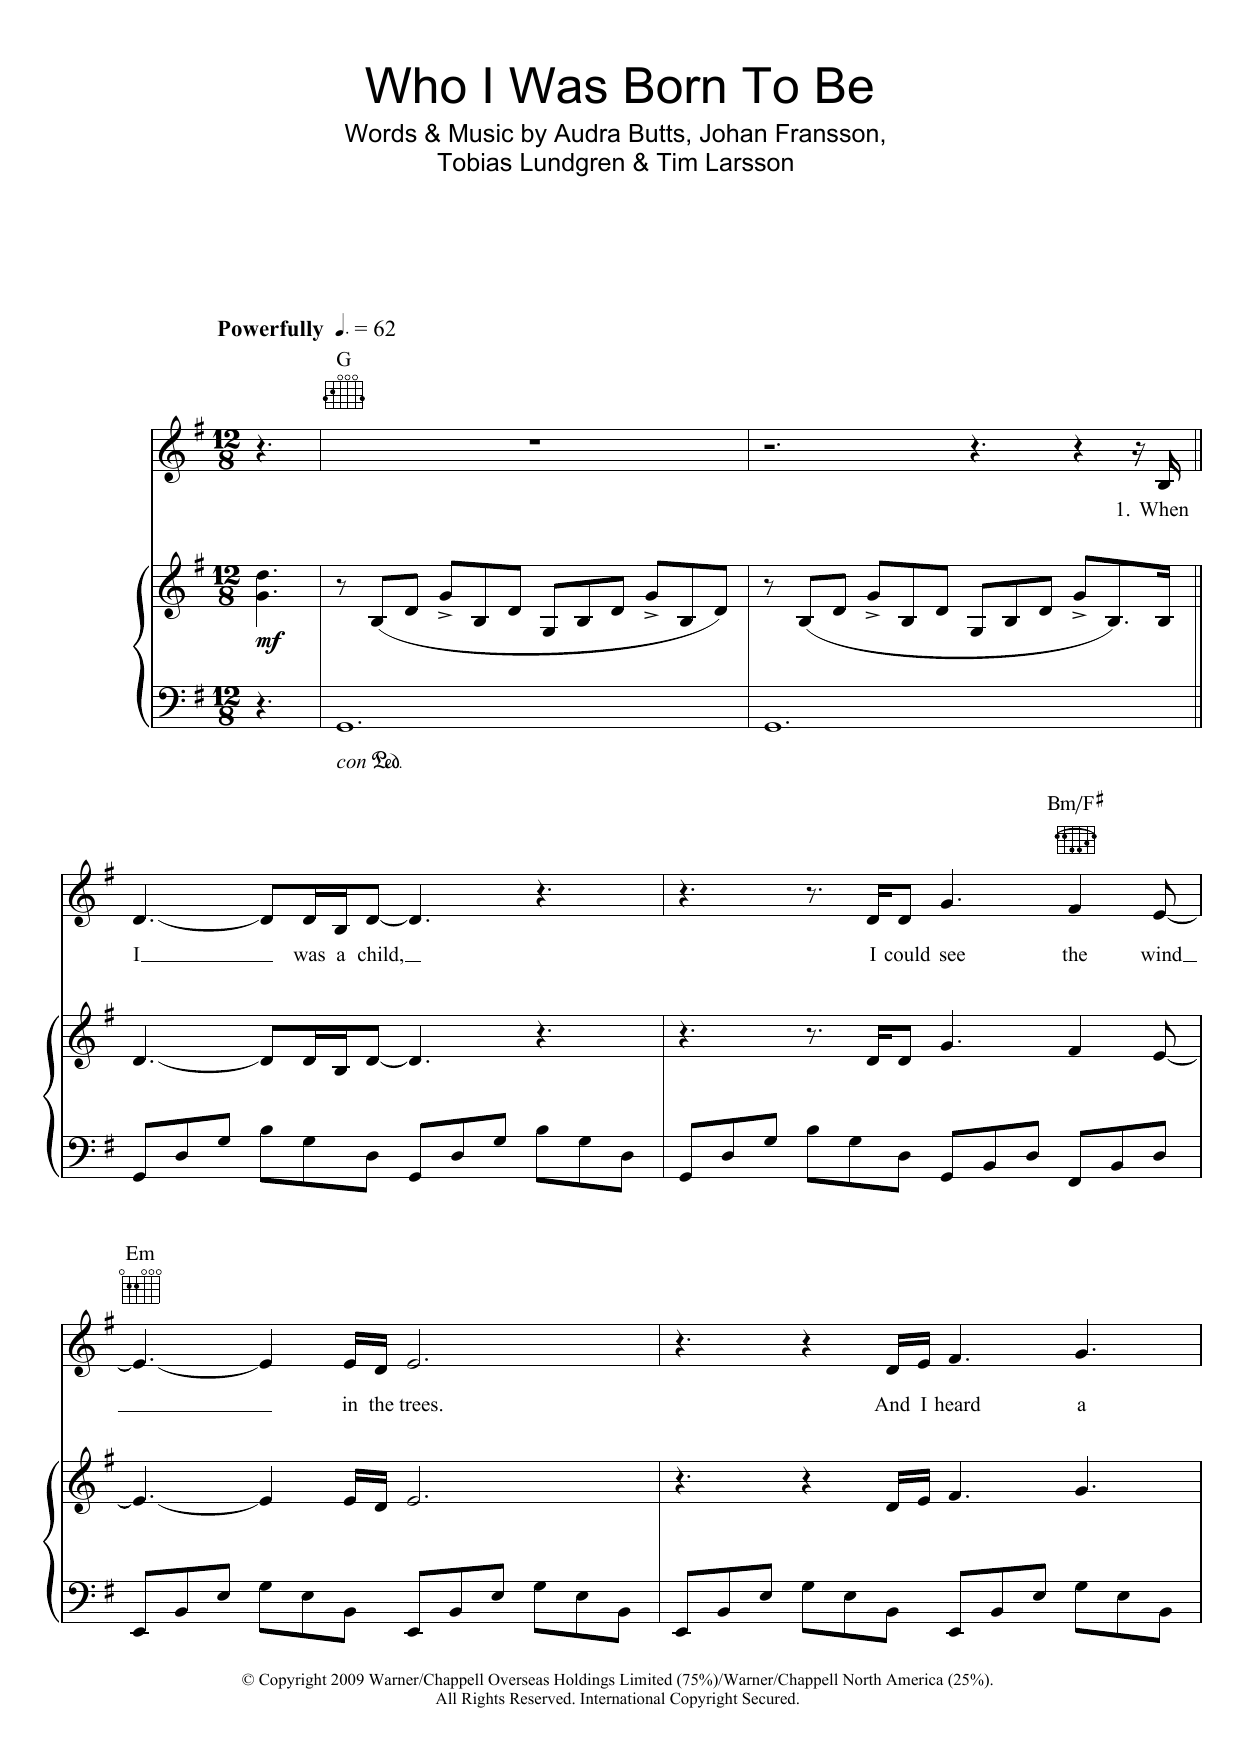 Who I Was Born To Be sheet music